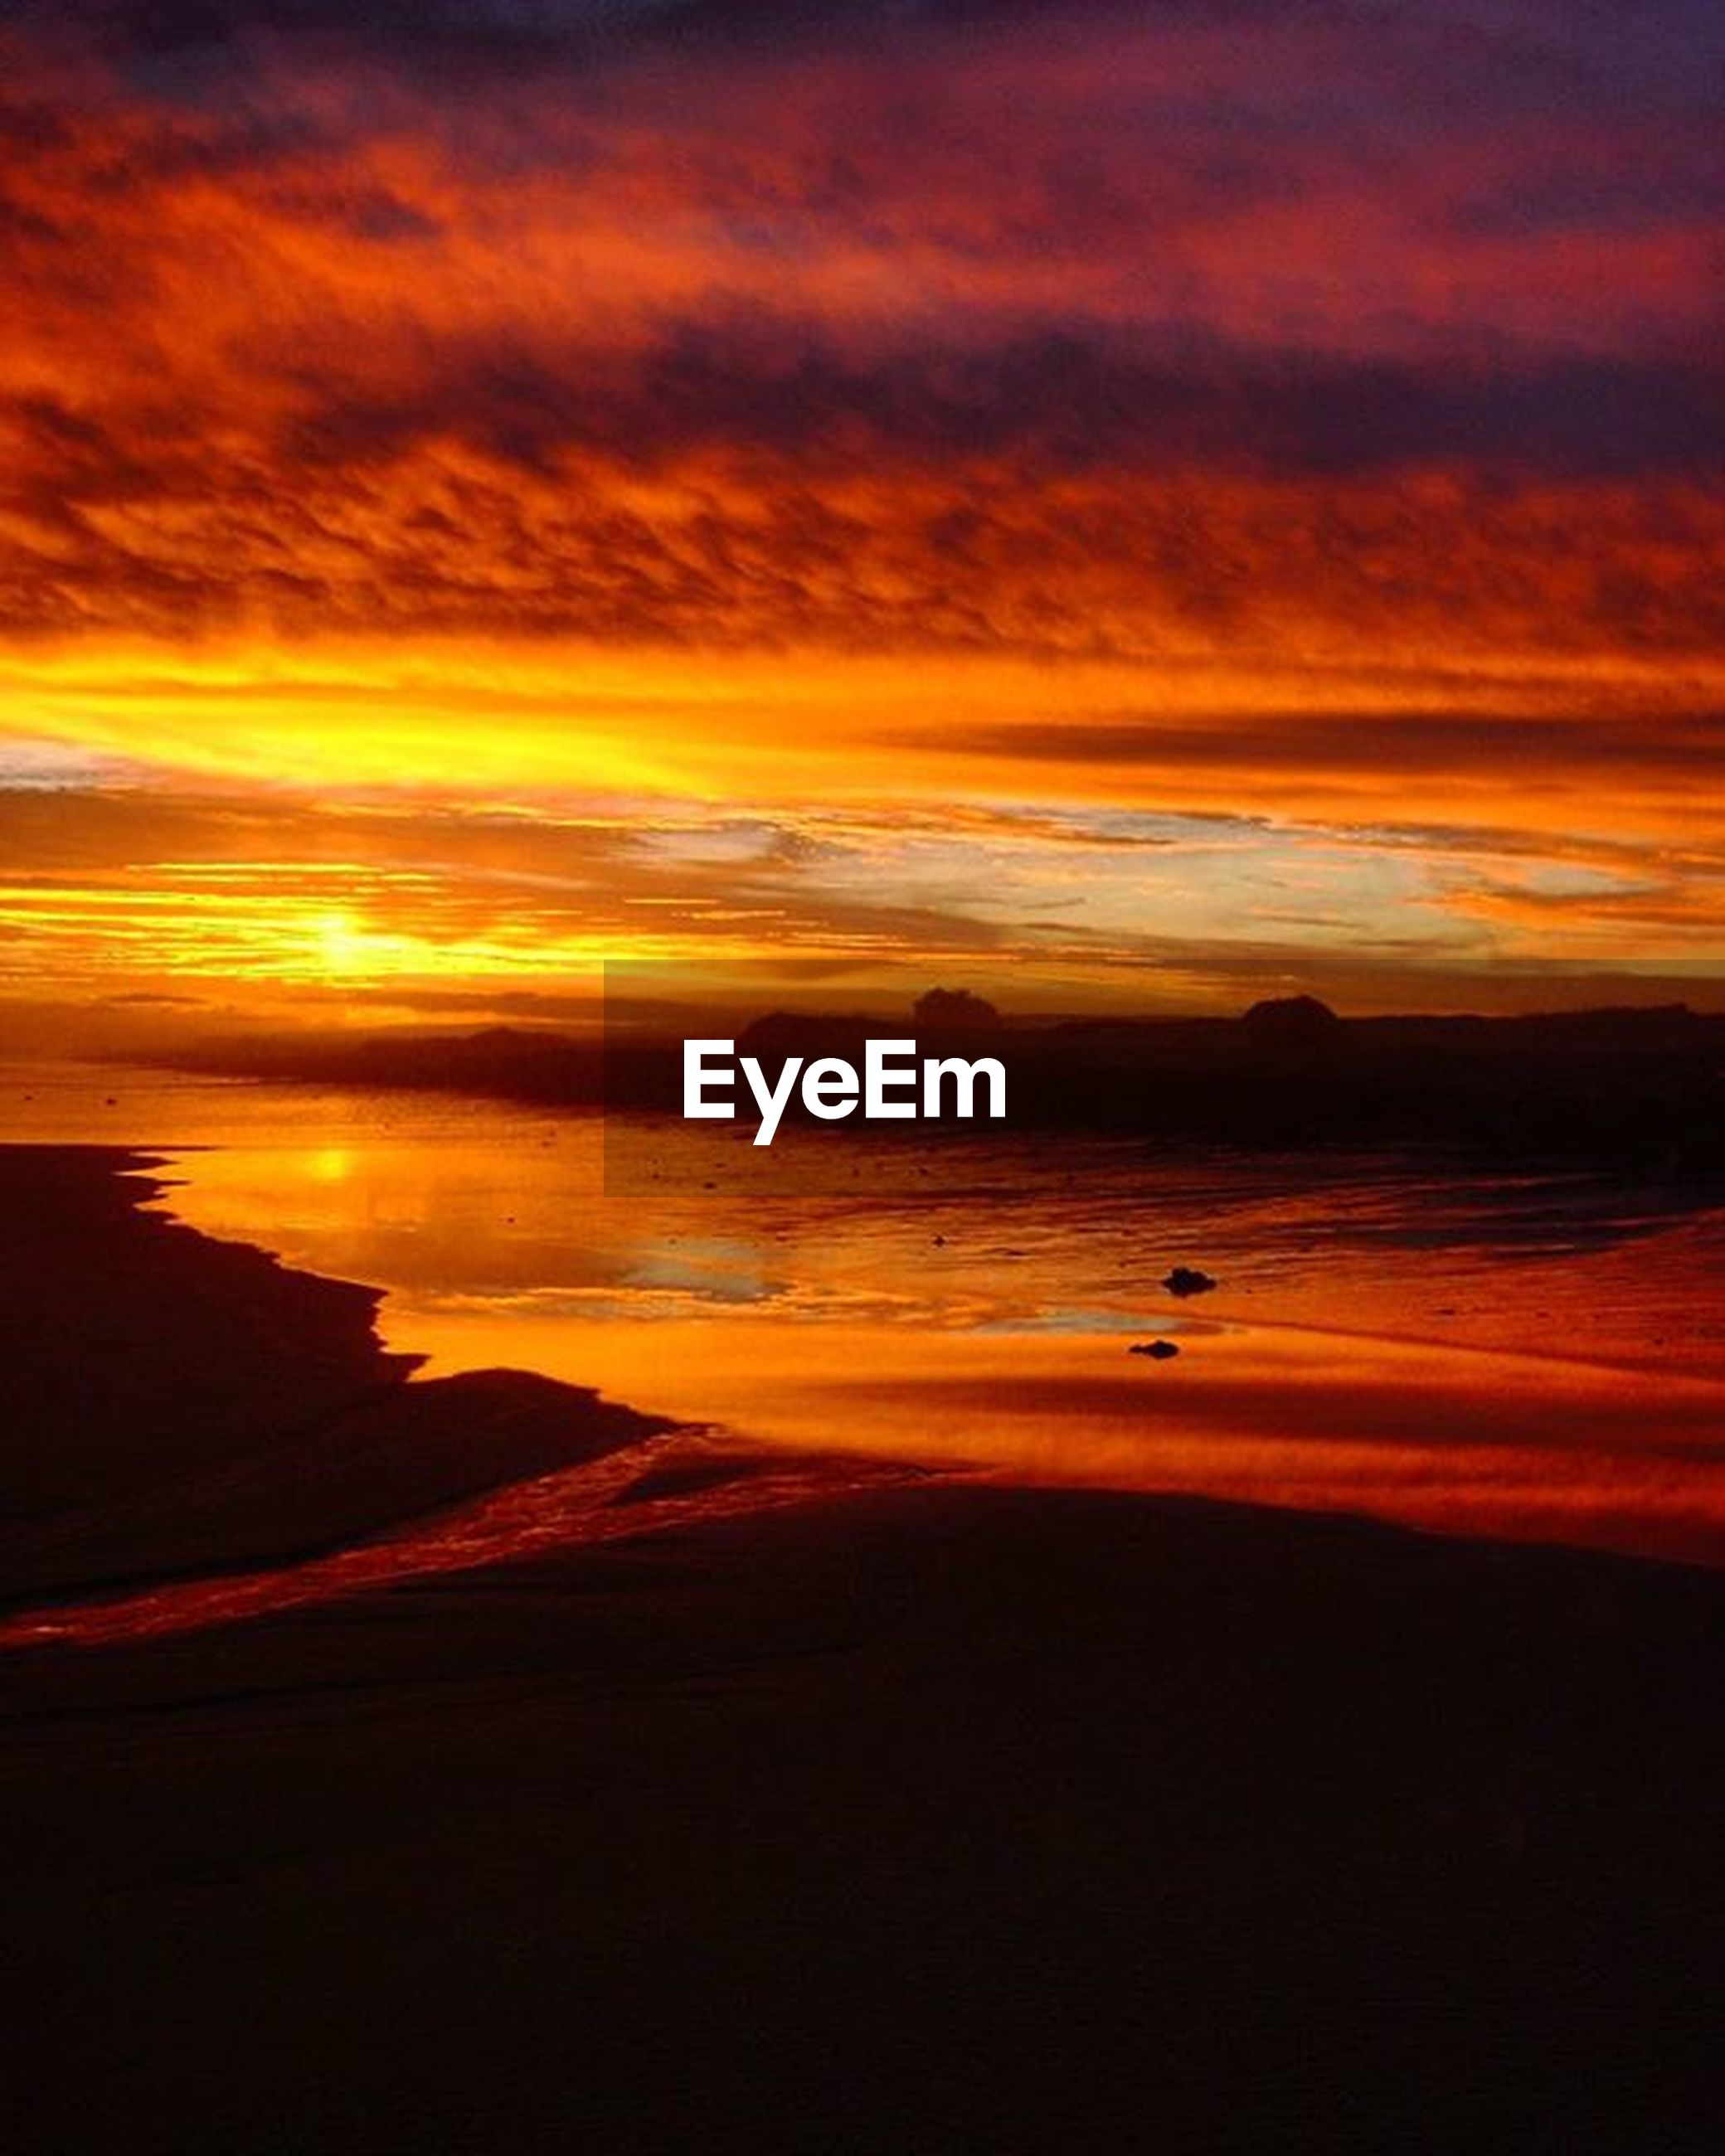 sunset, scenics, orange color, tranquil scene, beauty in nature, sky, water, tranquility, sea, cloud - sky, idyllic, dramatic sky, nature, horizon over water, beach, cloud, silhouette, majestic, cloudy, atmospheric mood